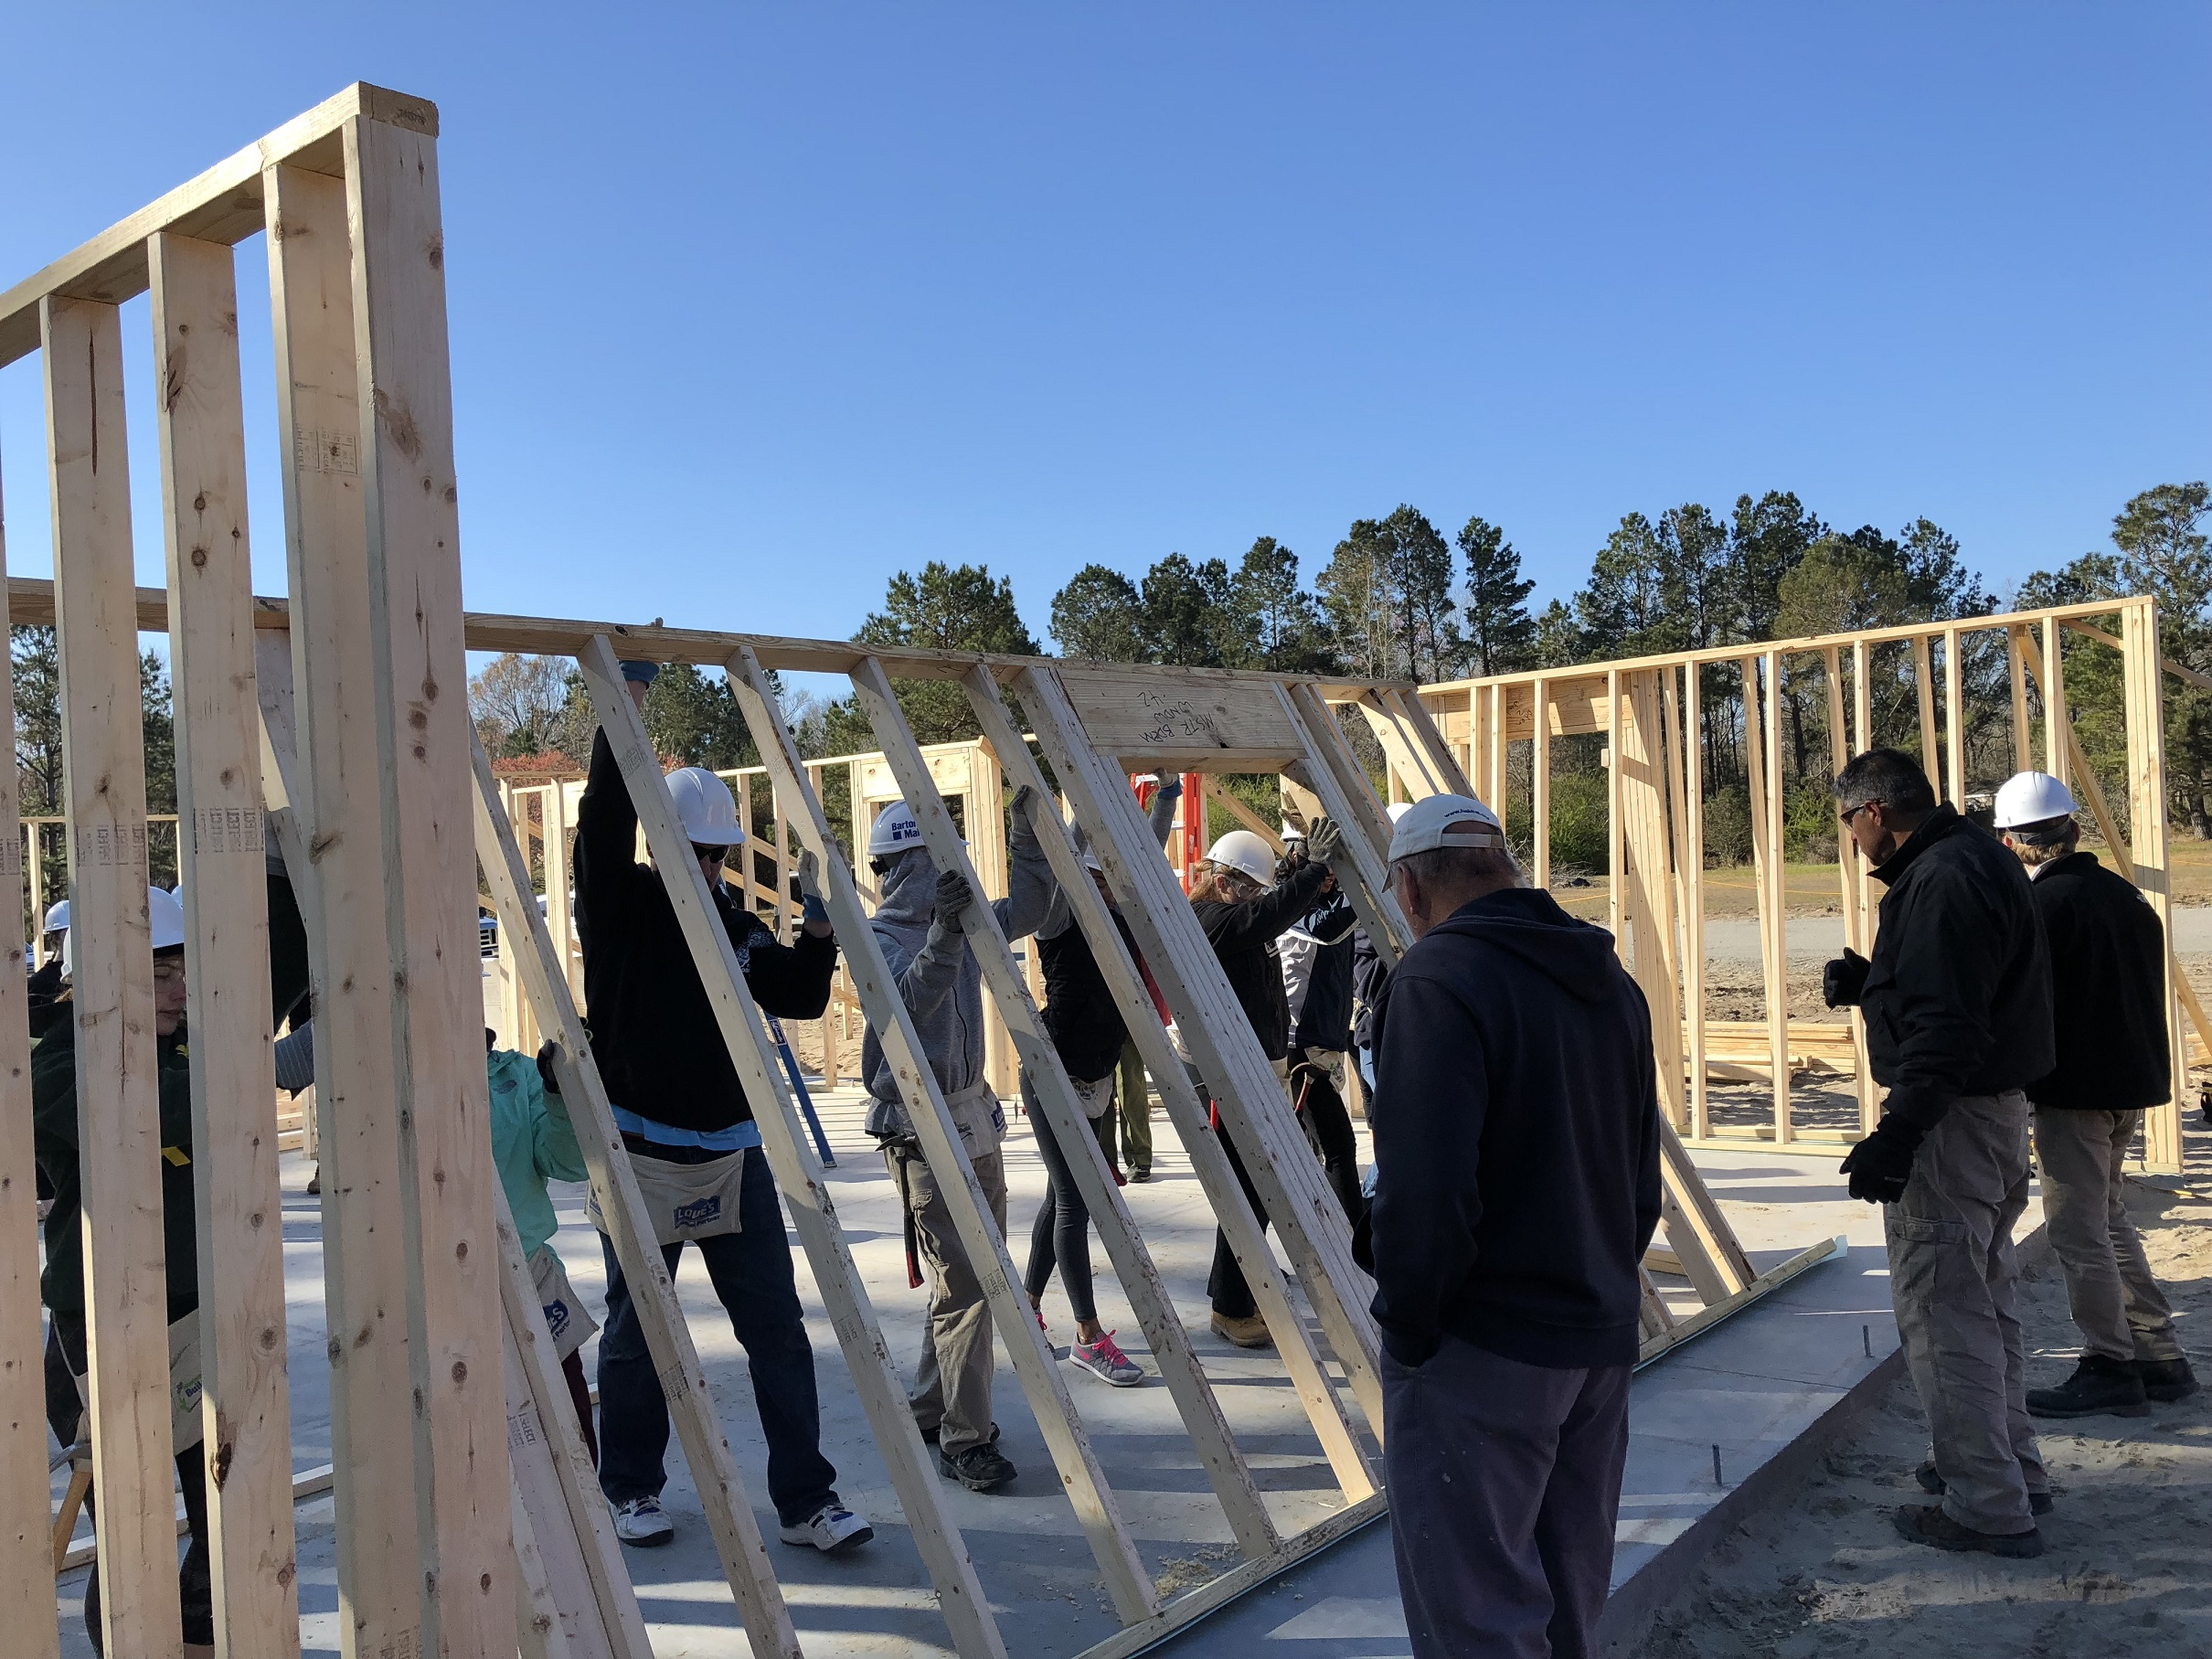 Student volunteers help put together a Habitat for Humanity house